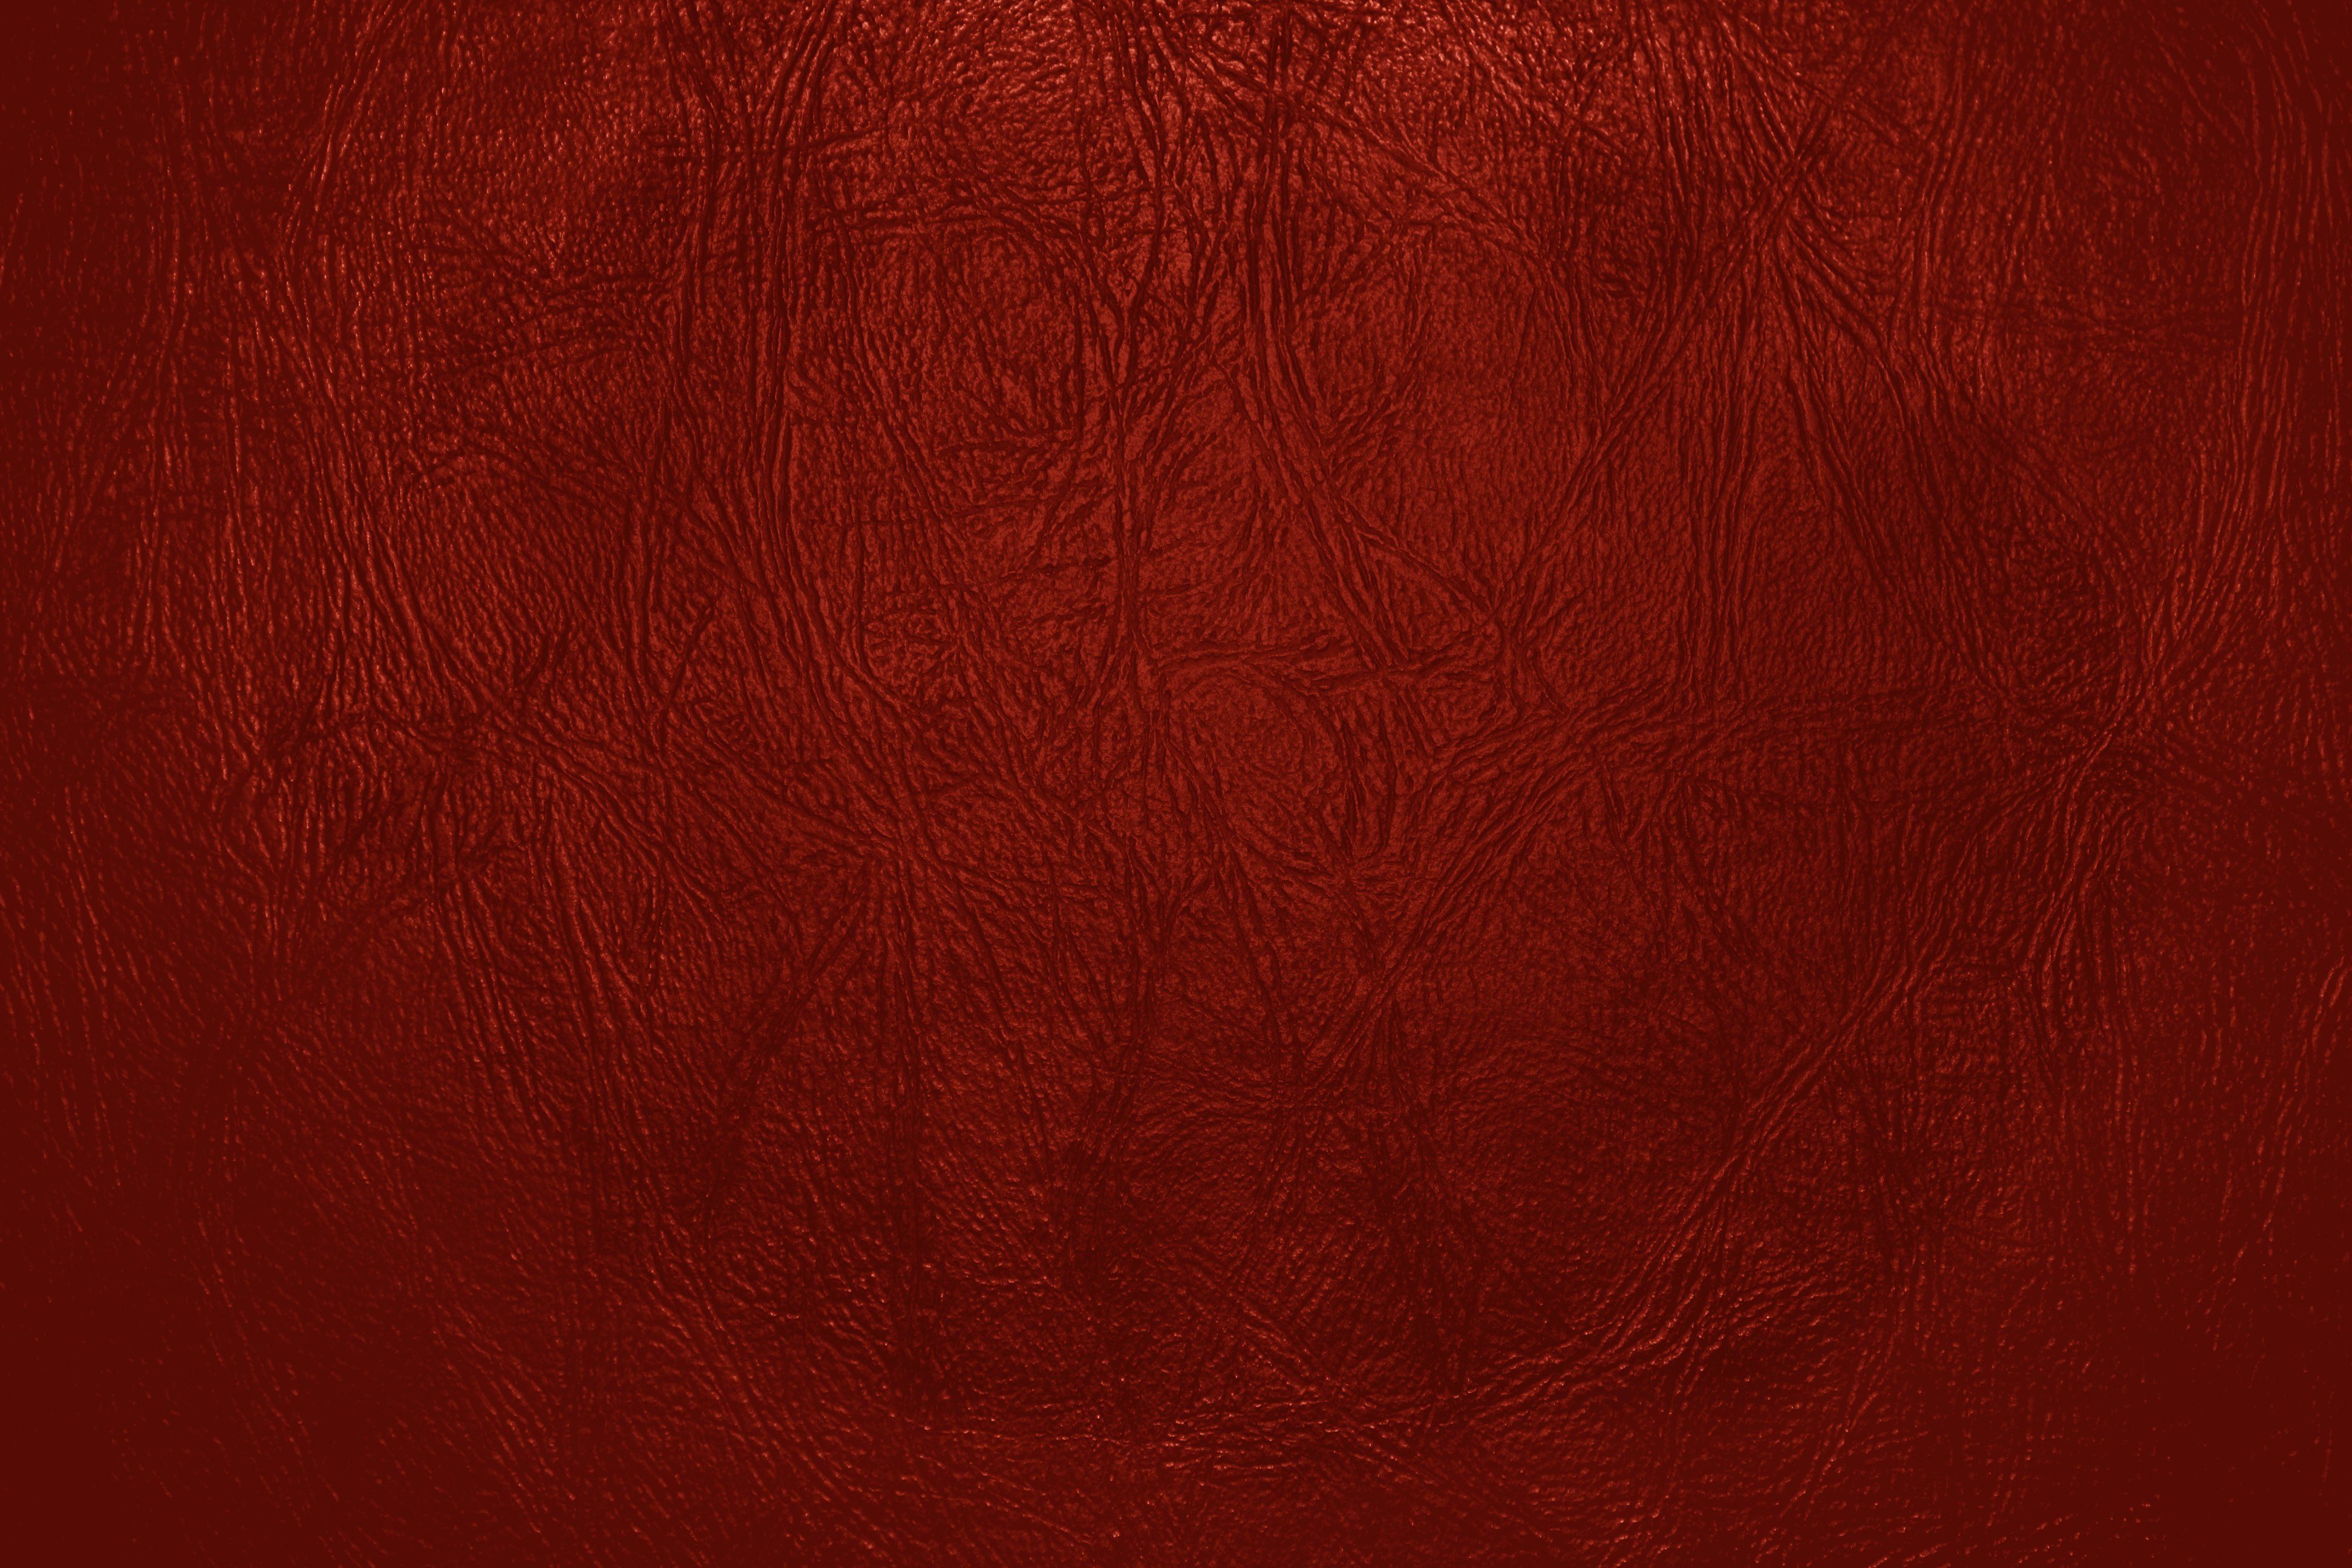 Red leather close up texturejpg 38882592 Admod